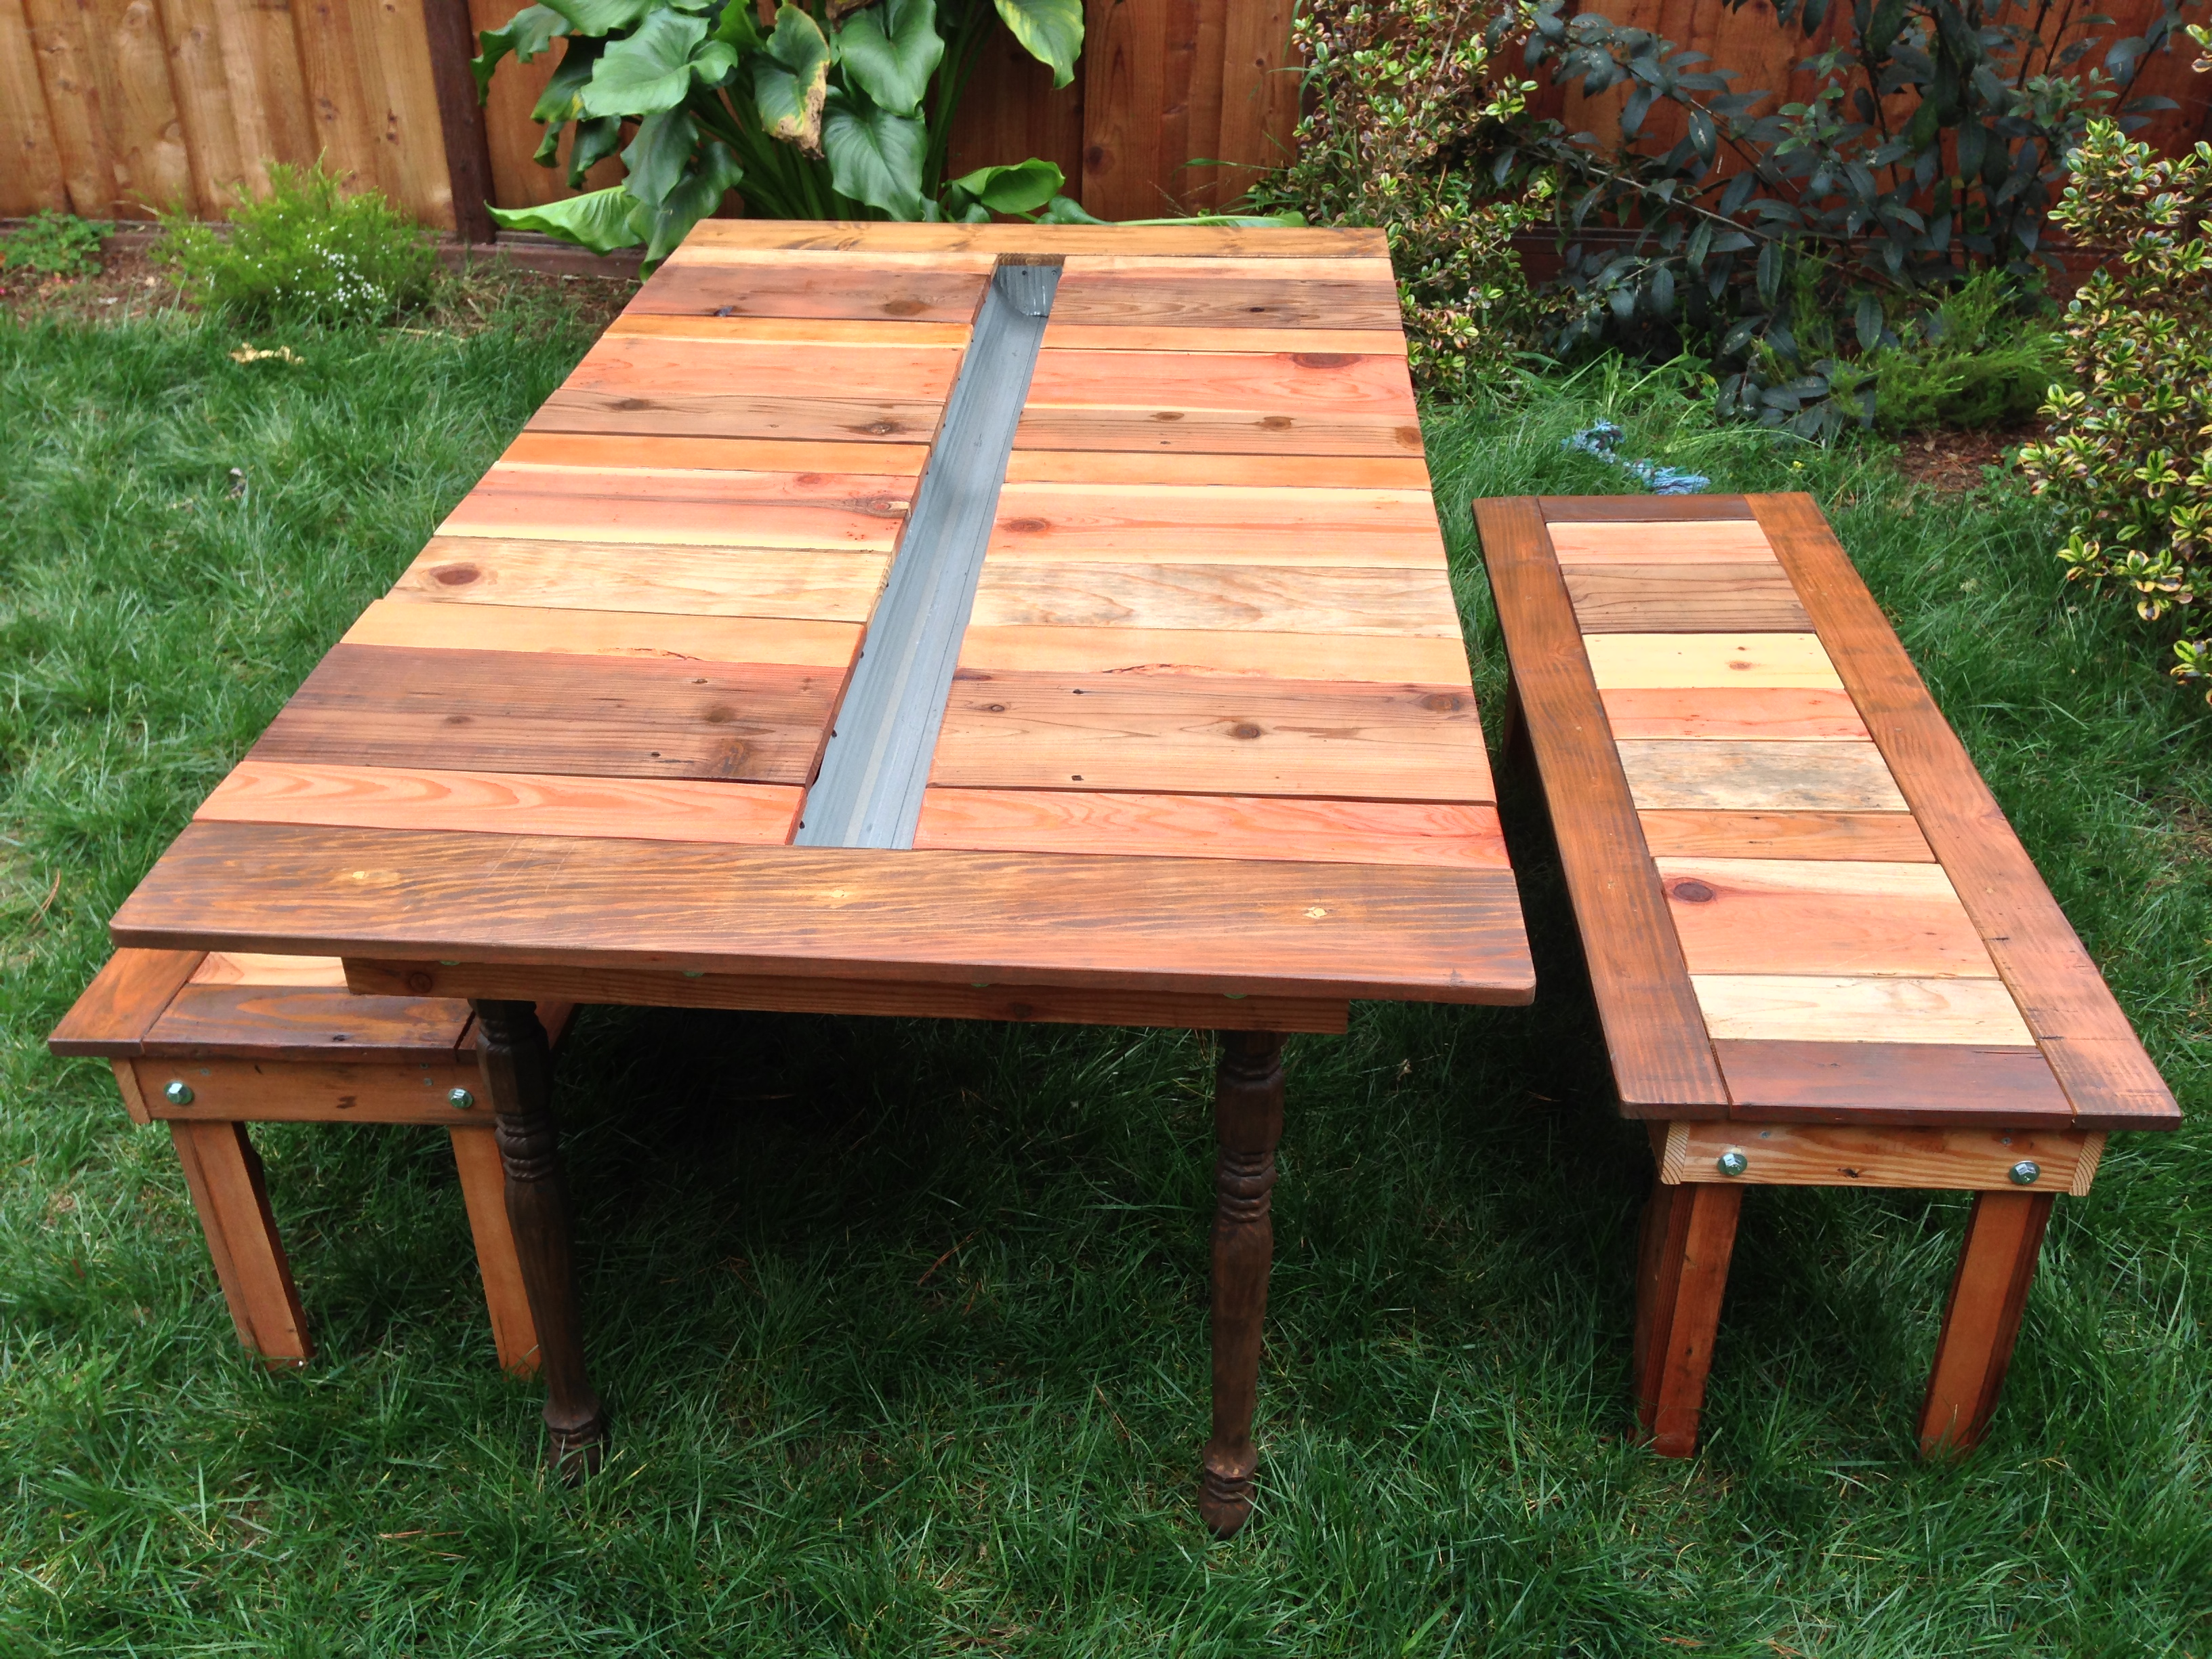 Picture of Reclaimed Wood Flat-Pack Picnic Table With Planter/Ice Trough